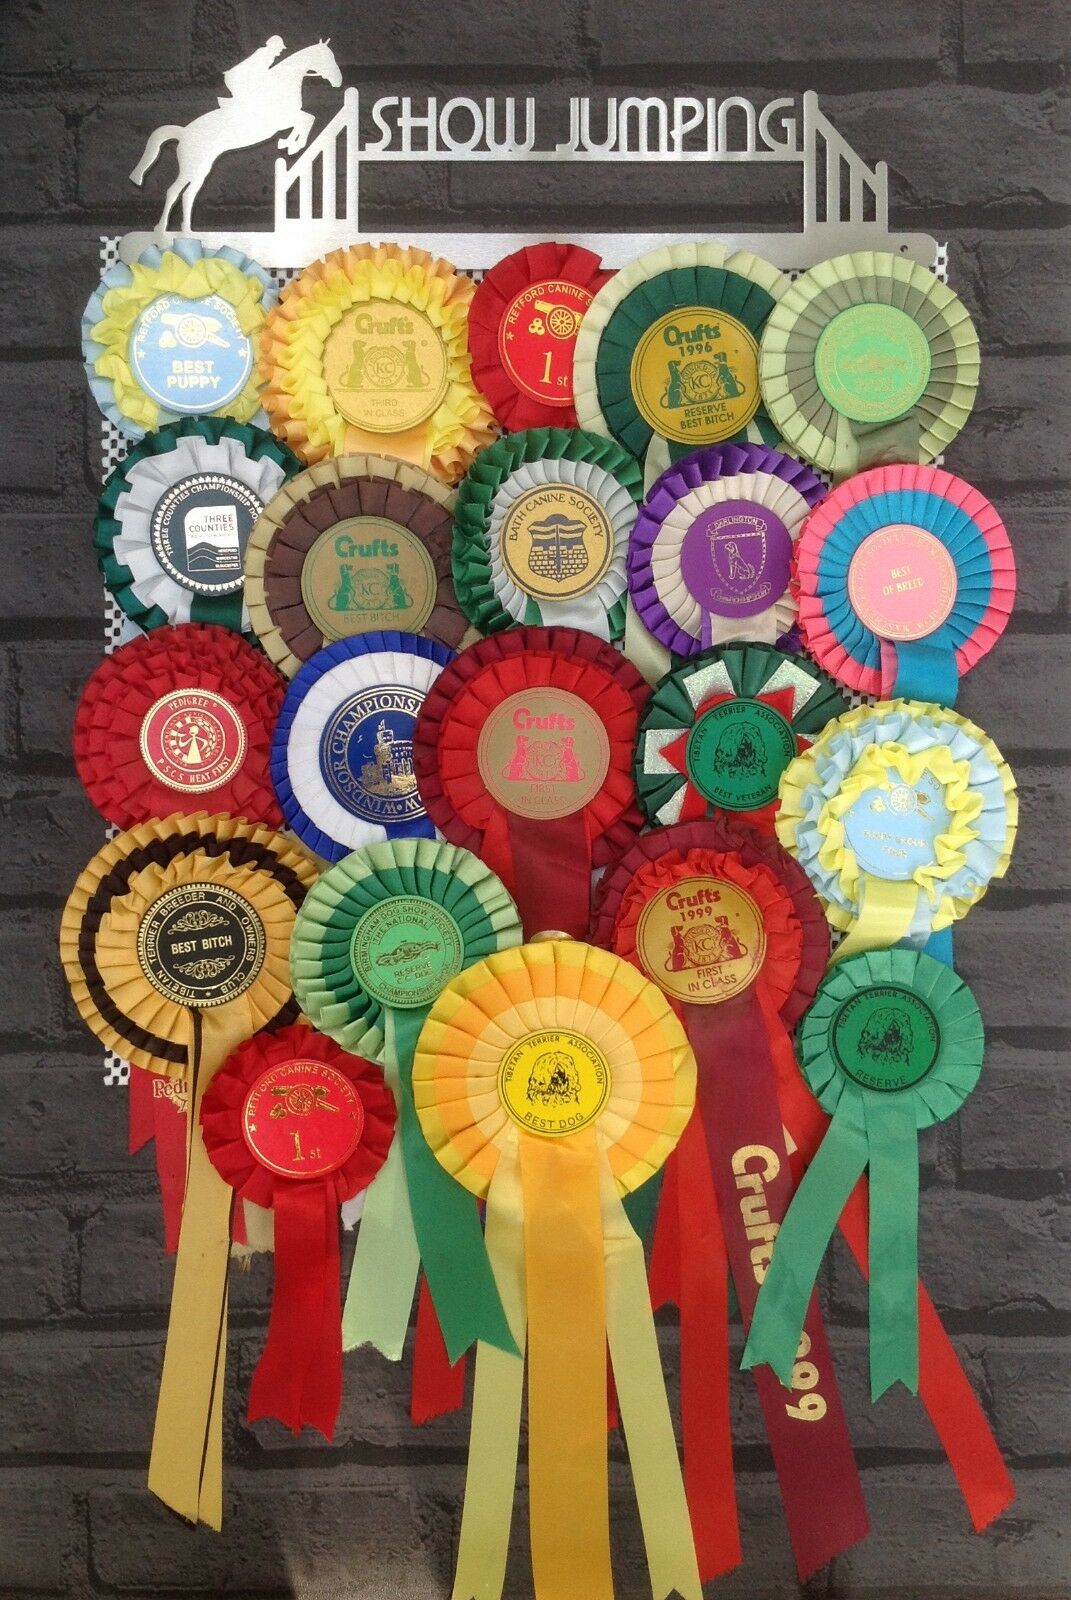 Horse Show Jumping Rosette Stainless Steel Display